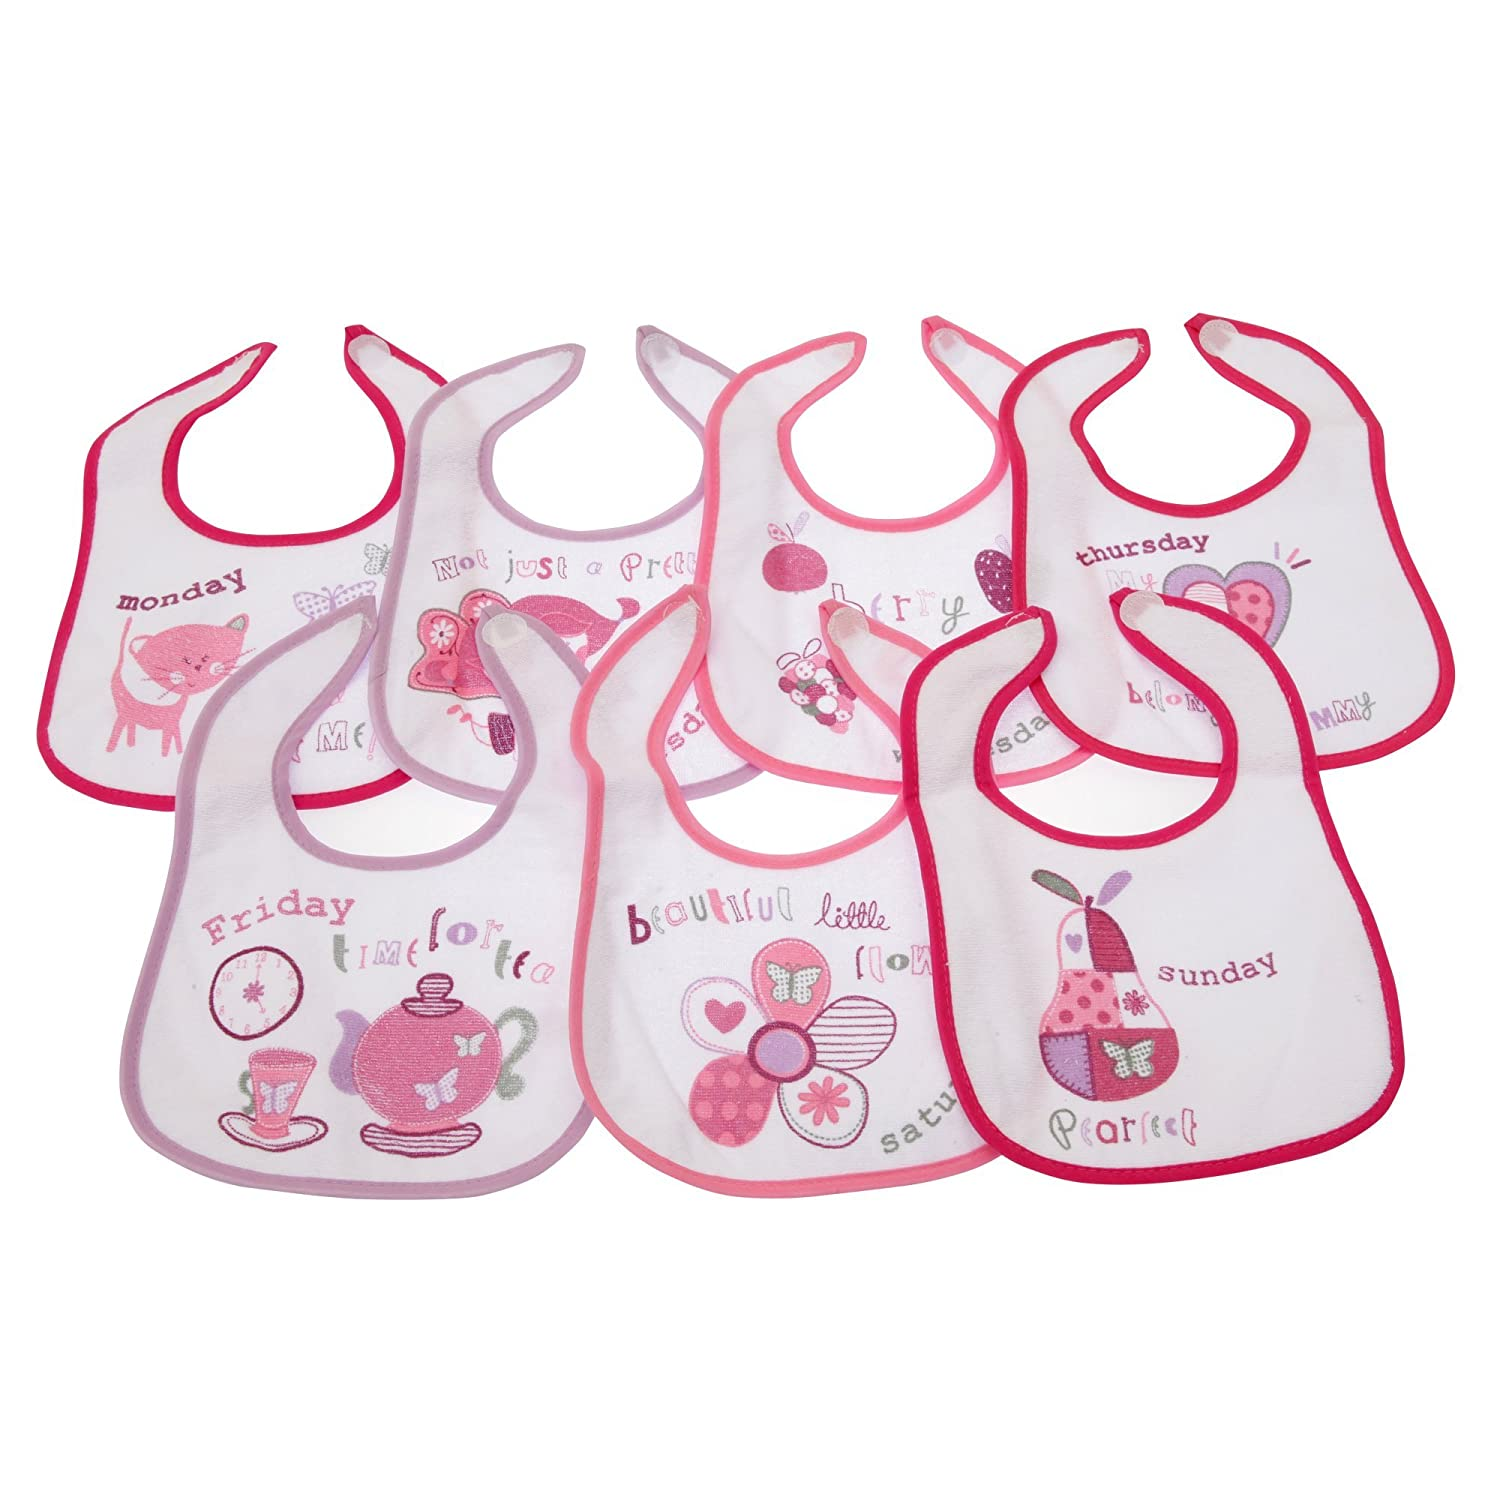 Baby Patterned 7 Days Of The Week Bibs in Boys & Girls Options (Pack of 7) (0-6 Months) (Pink) Nursery Time UTBABY806_1